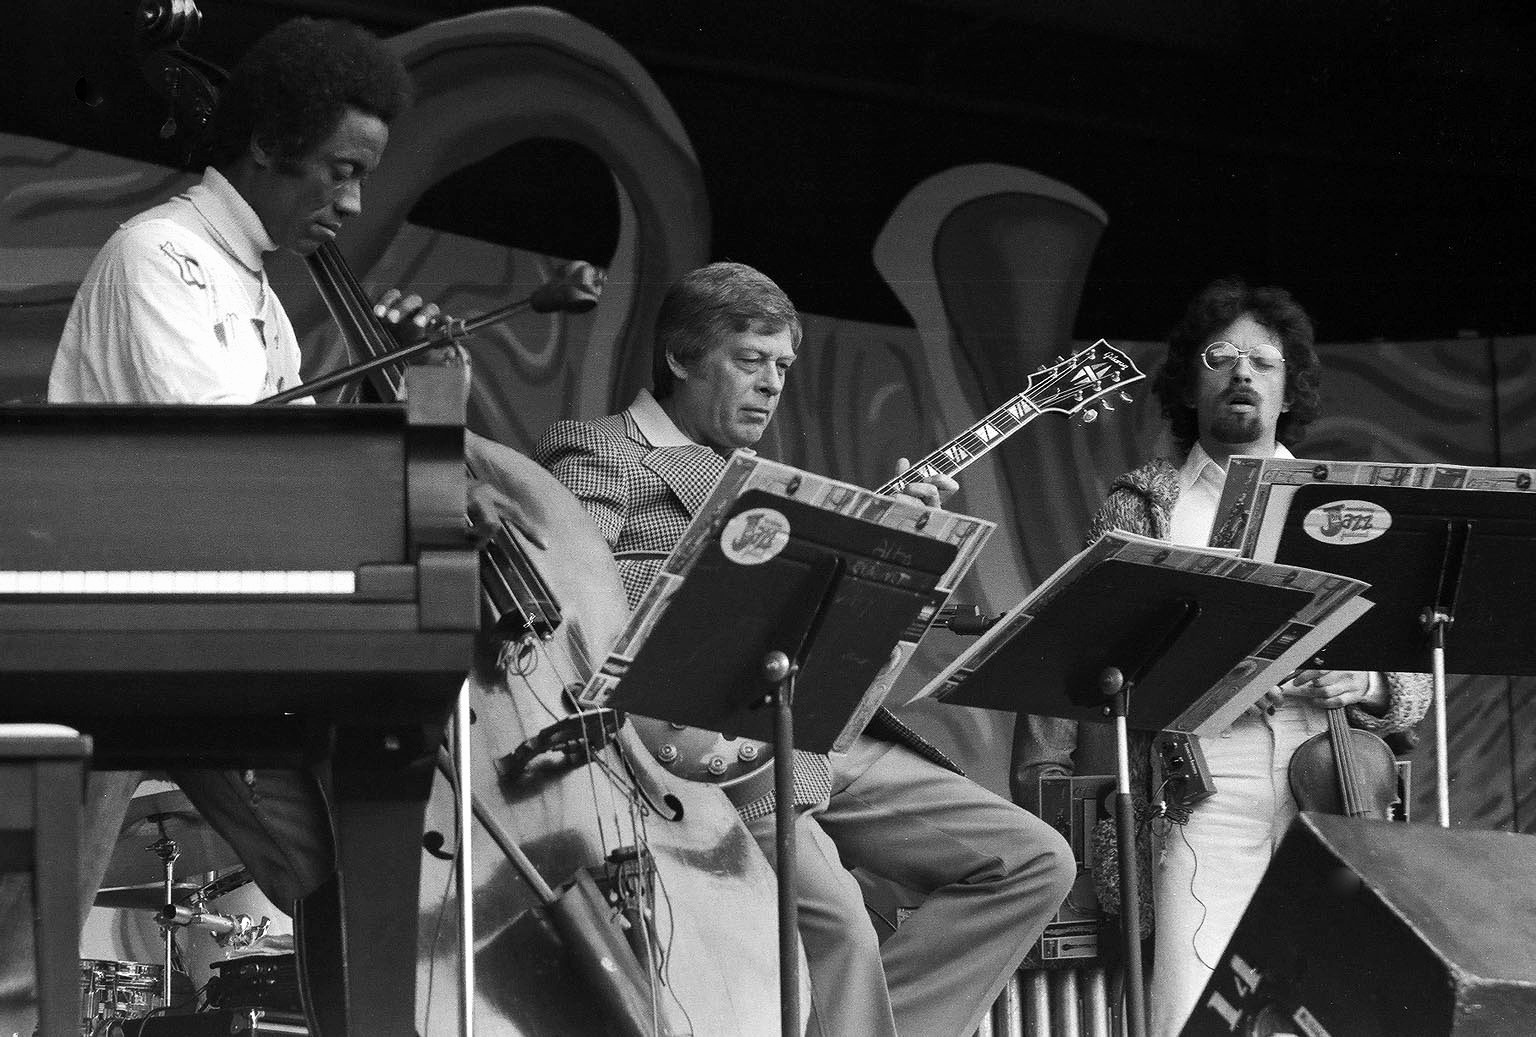 Richard Davis, Mundell Lowe, Zbignew Seifert at the Monterey Jazz Festival. Mid 70's